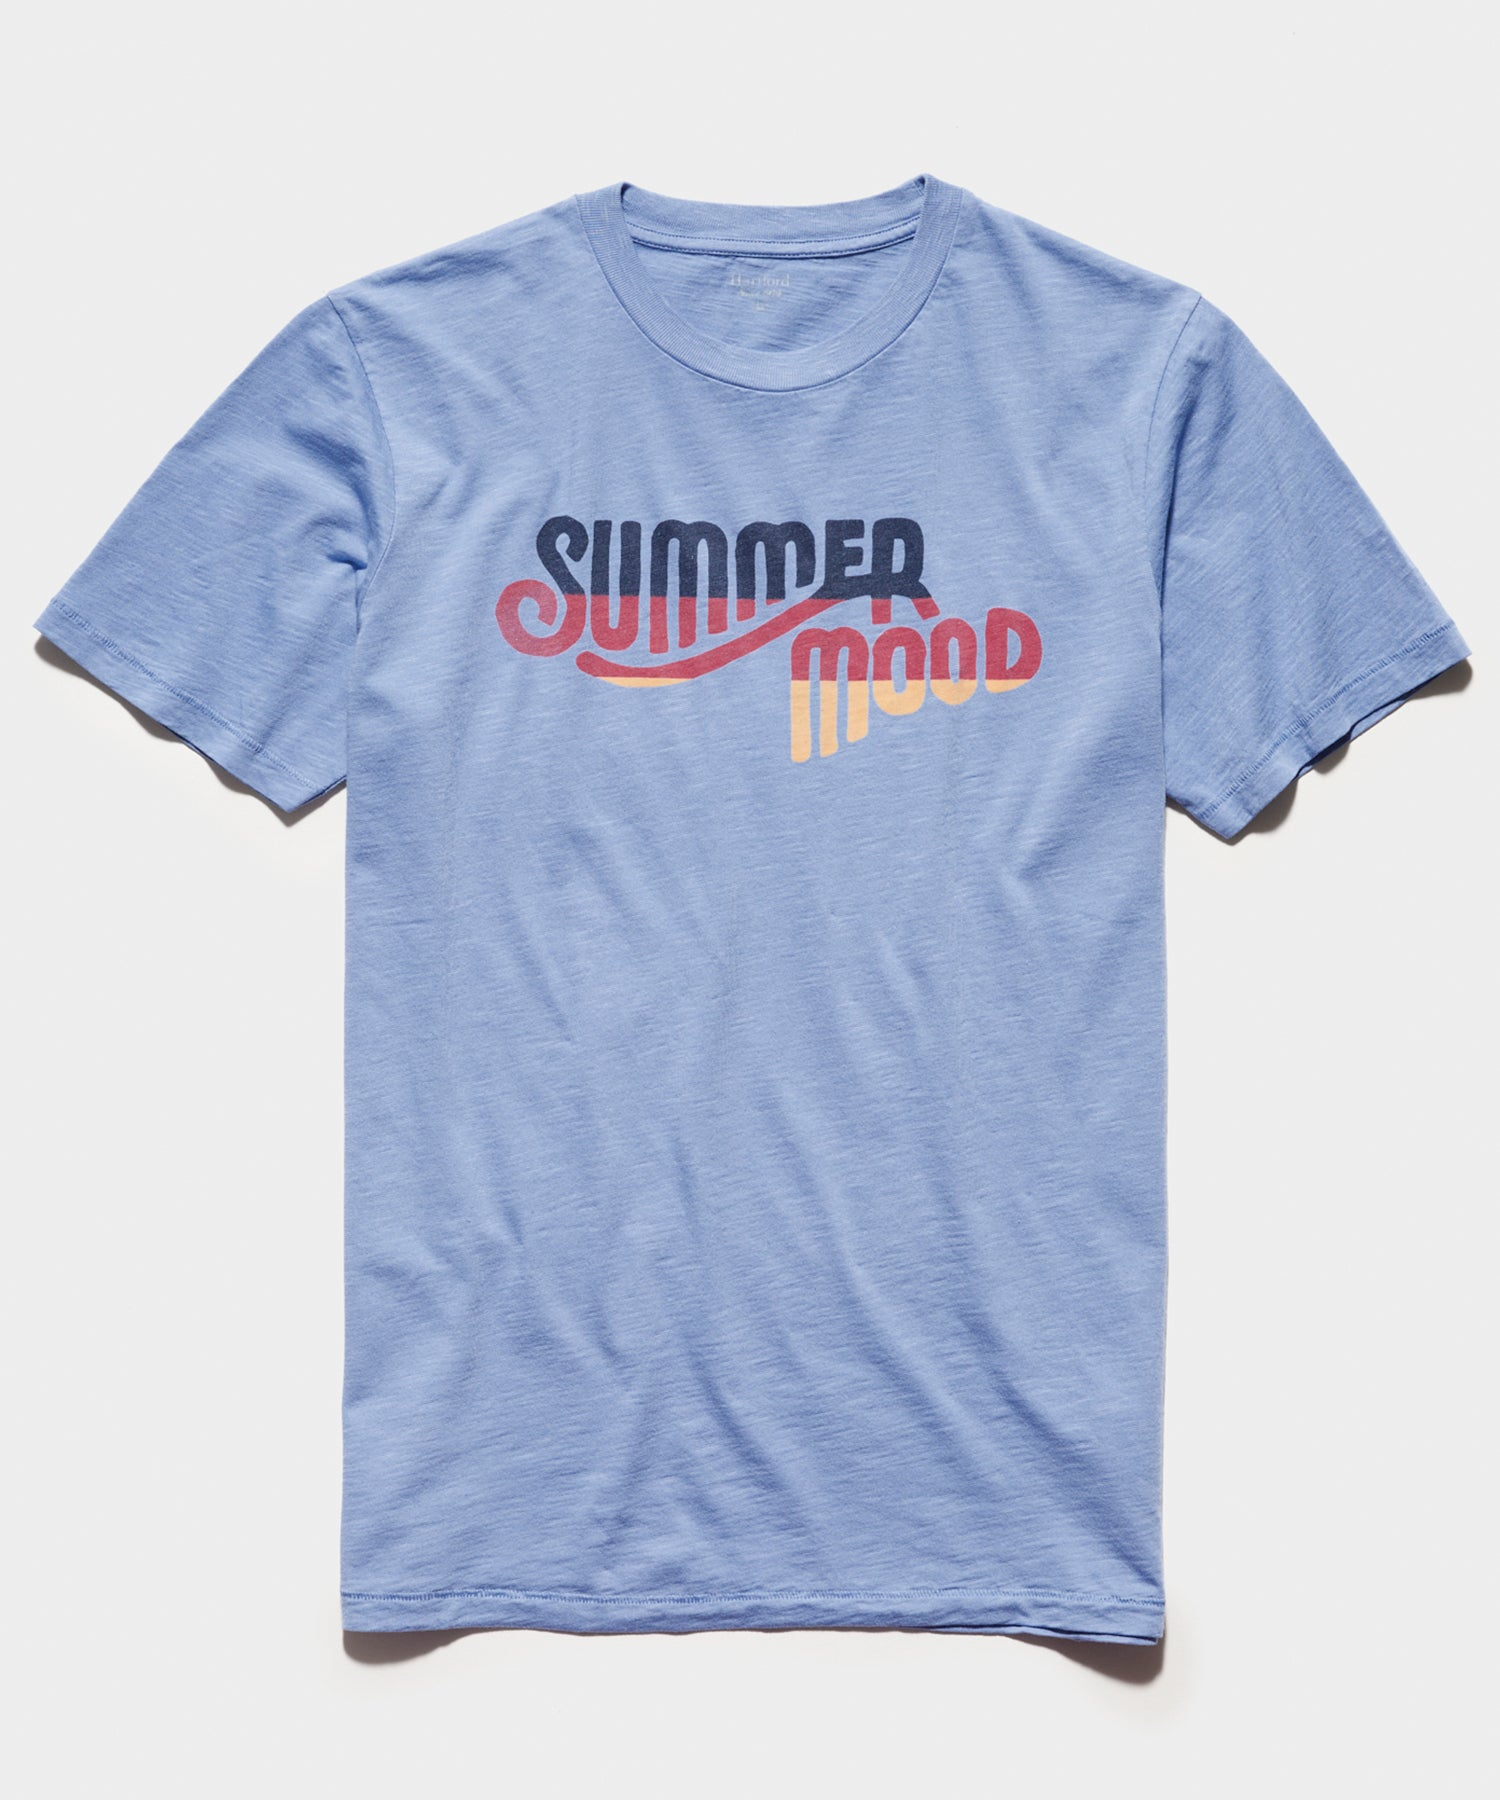 Hartford 'Summer Mood' T-Shirt in Chambray Blue